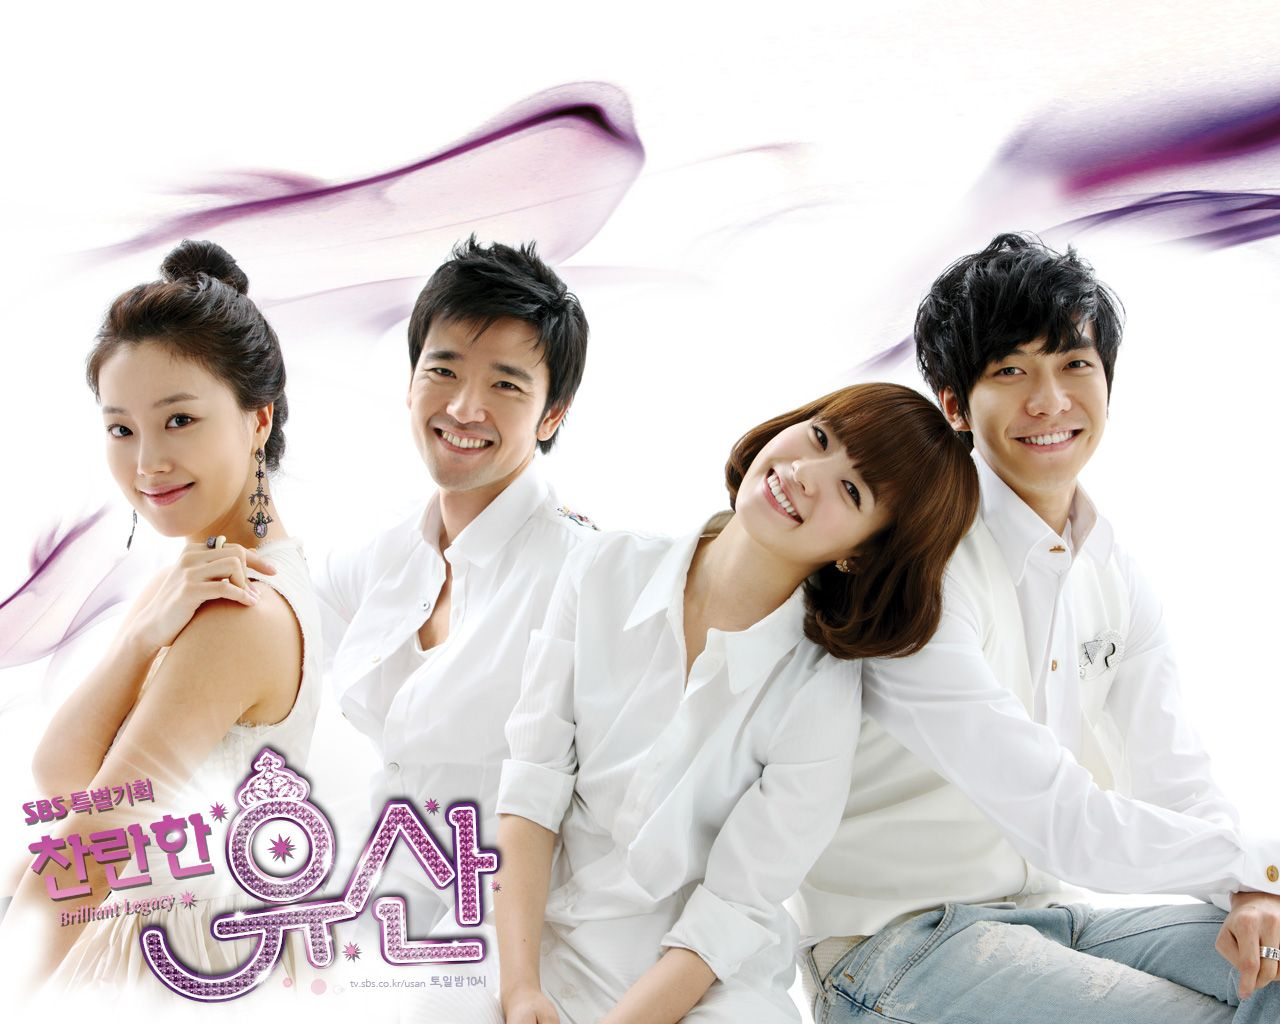 Brilliant Legacy. This has a very nice story. Kind of tragic from ...